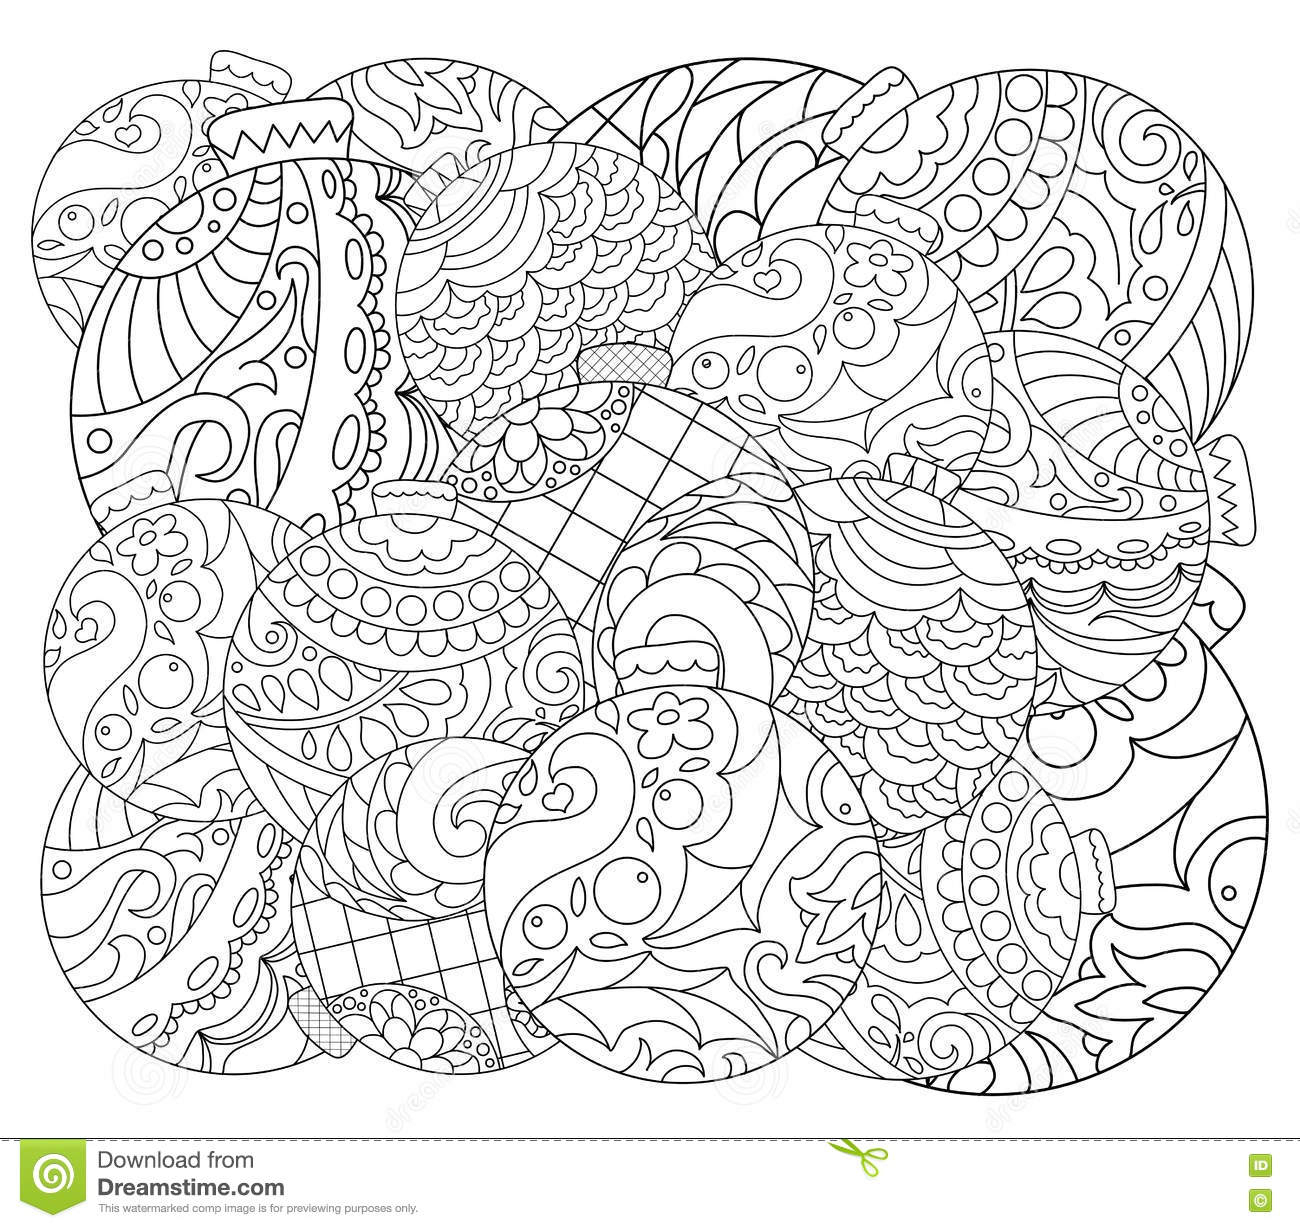 Christmas Tree Ornament Adult Coloring Page. Vector Coloring Page - Free Printable Christmas Tree Ornaments To Color